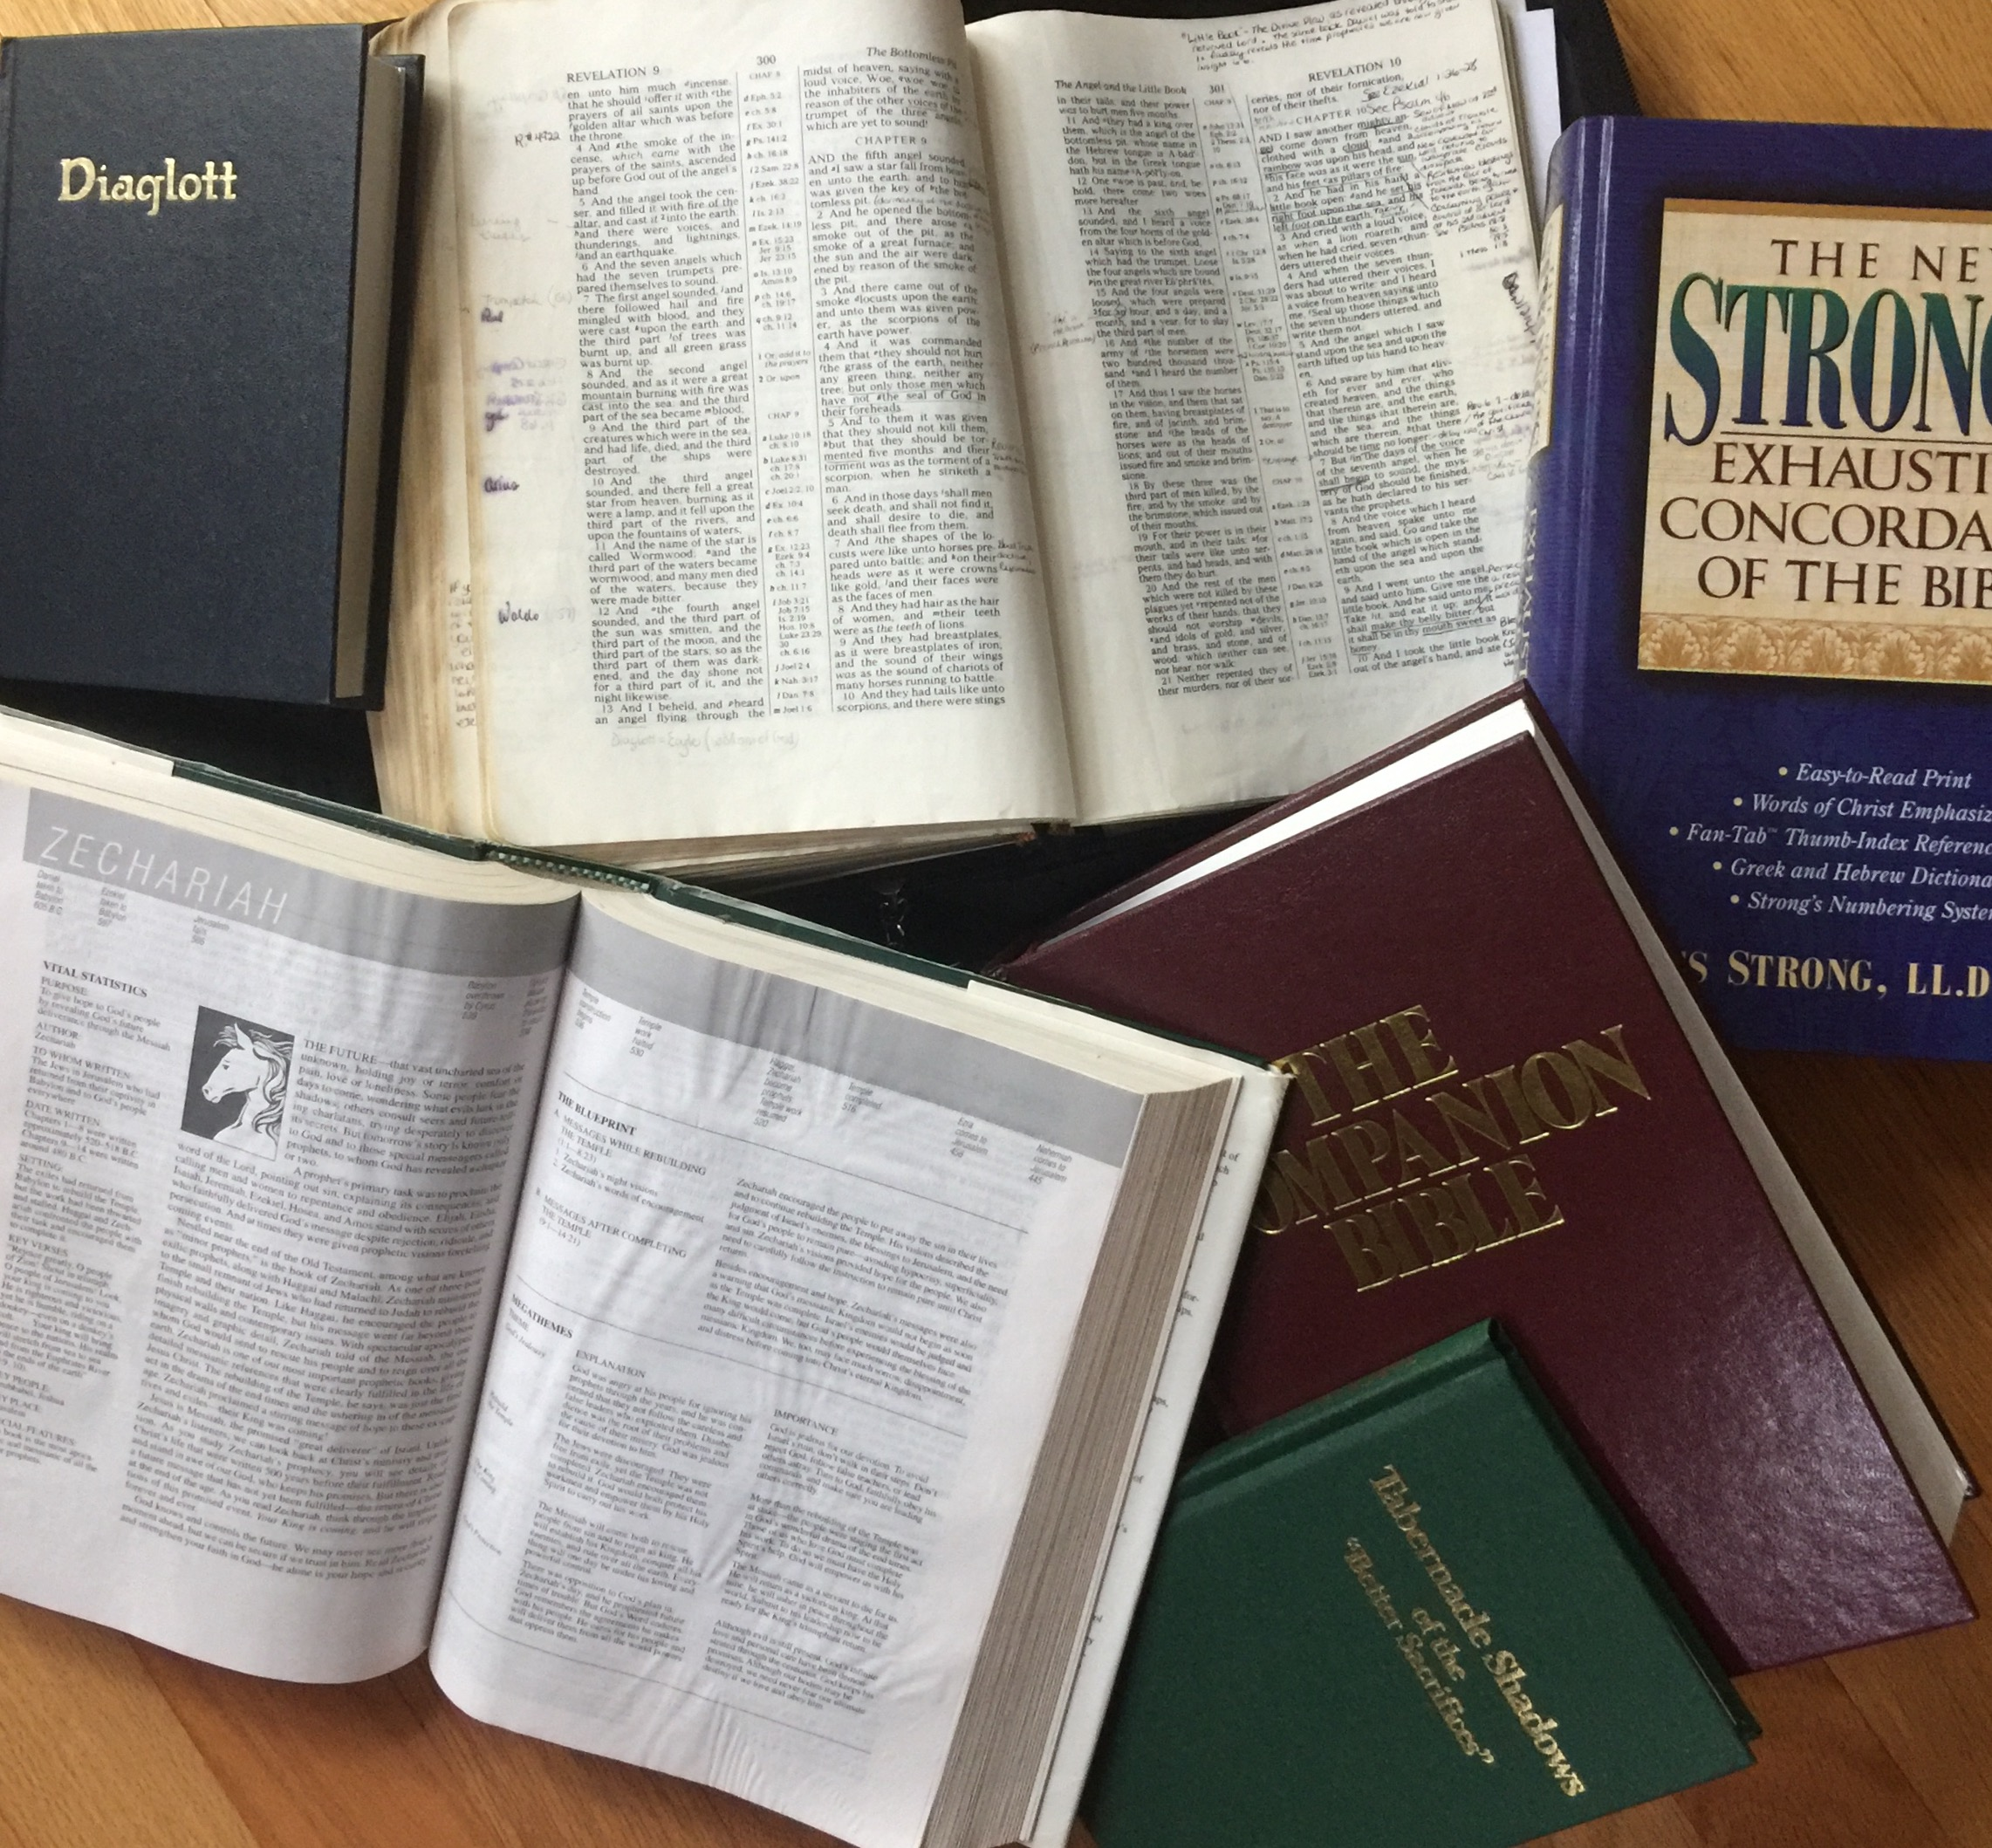 Why Didn't God Make the Bible Easy to Understand? (Part II)